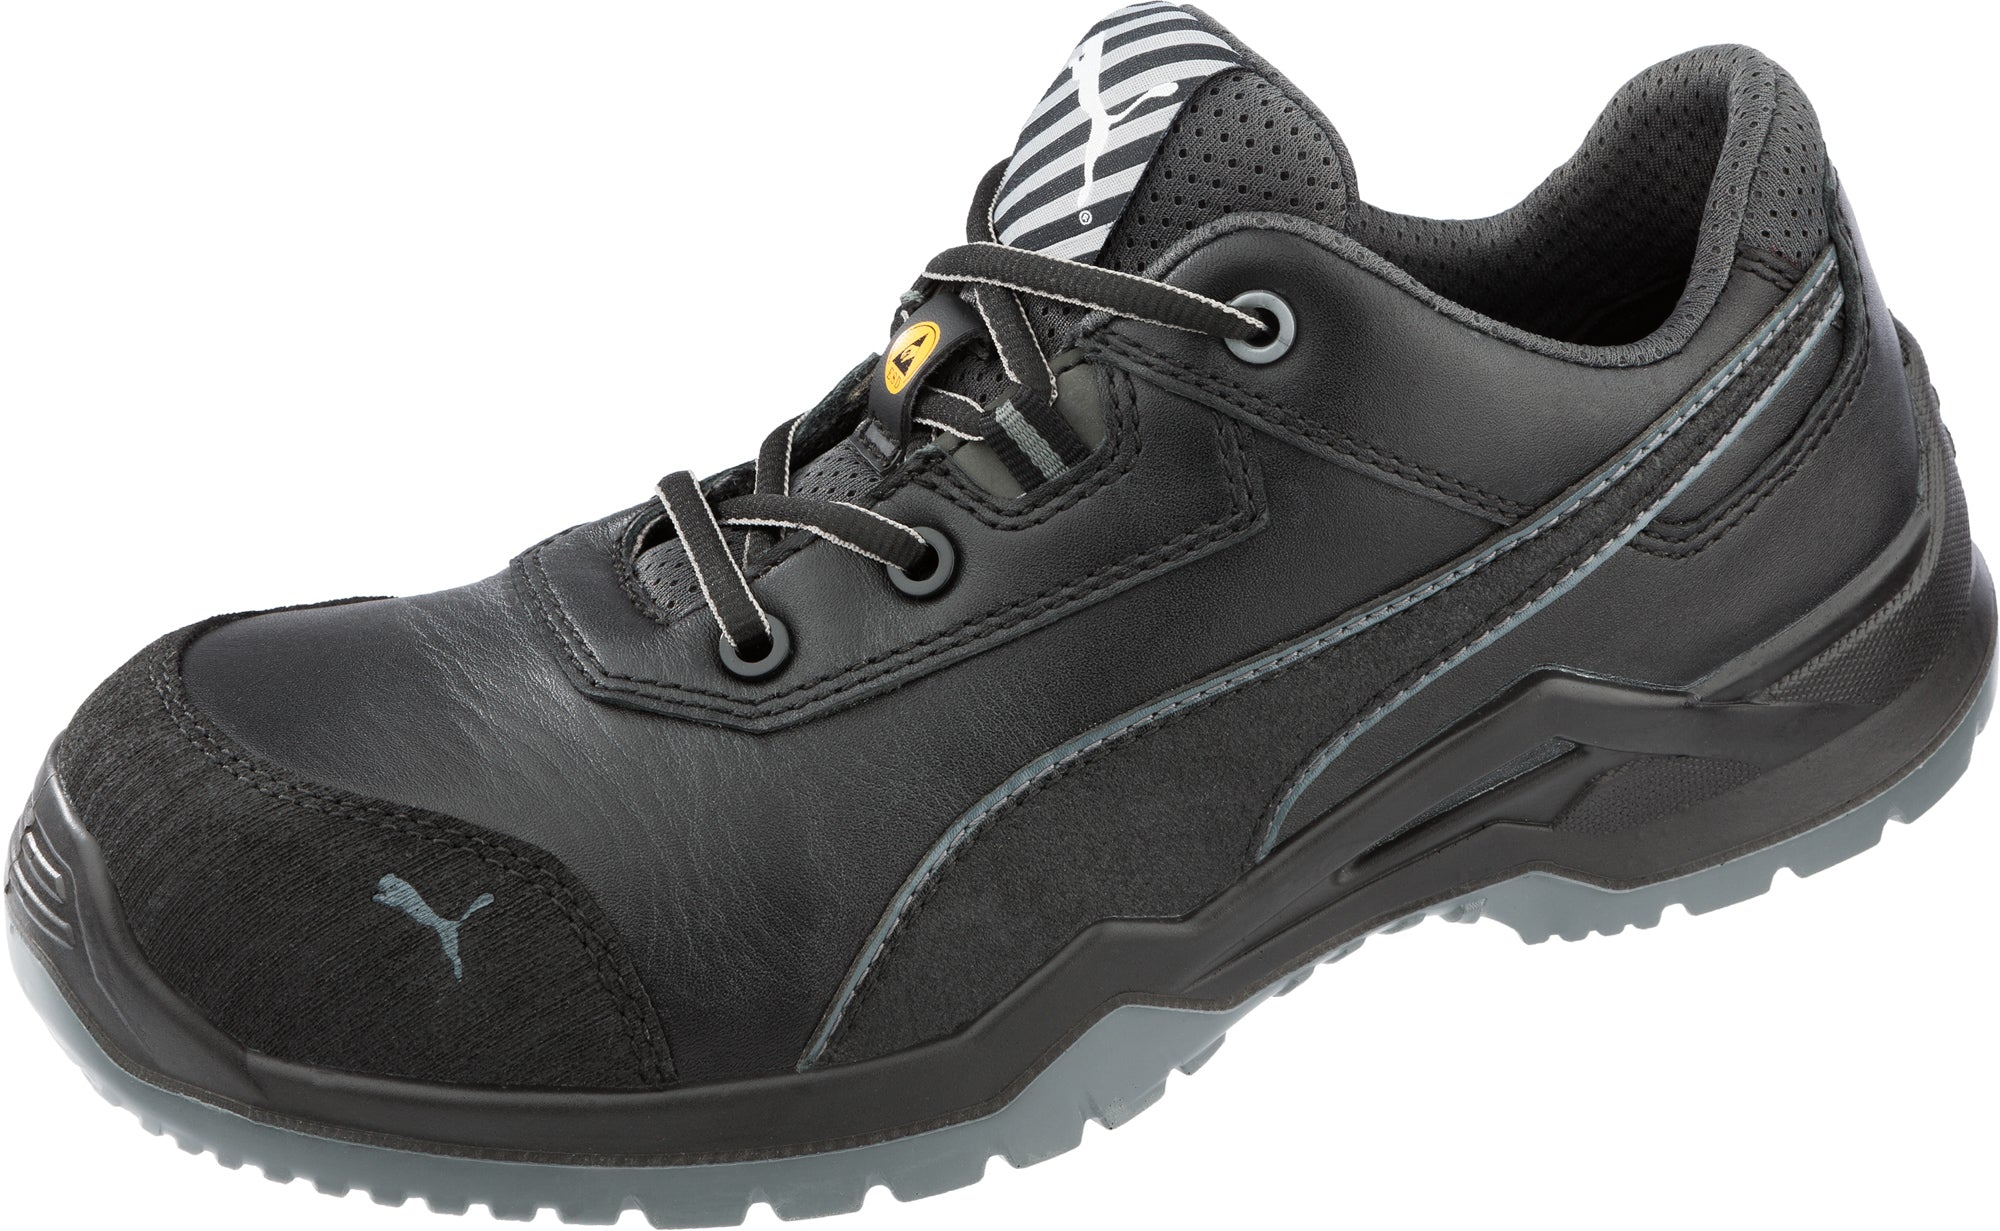 Puma Safety Black Mens Leather Argon Low Sd Astm Ct Oxfords Work